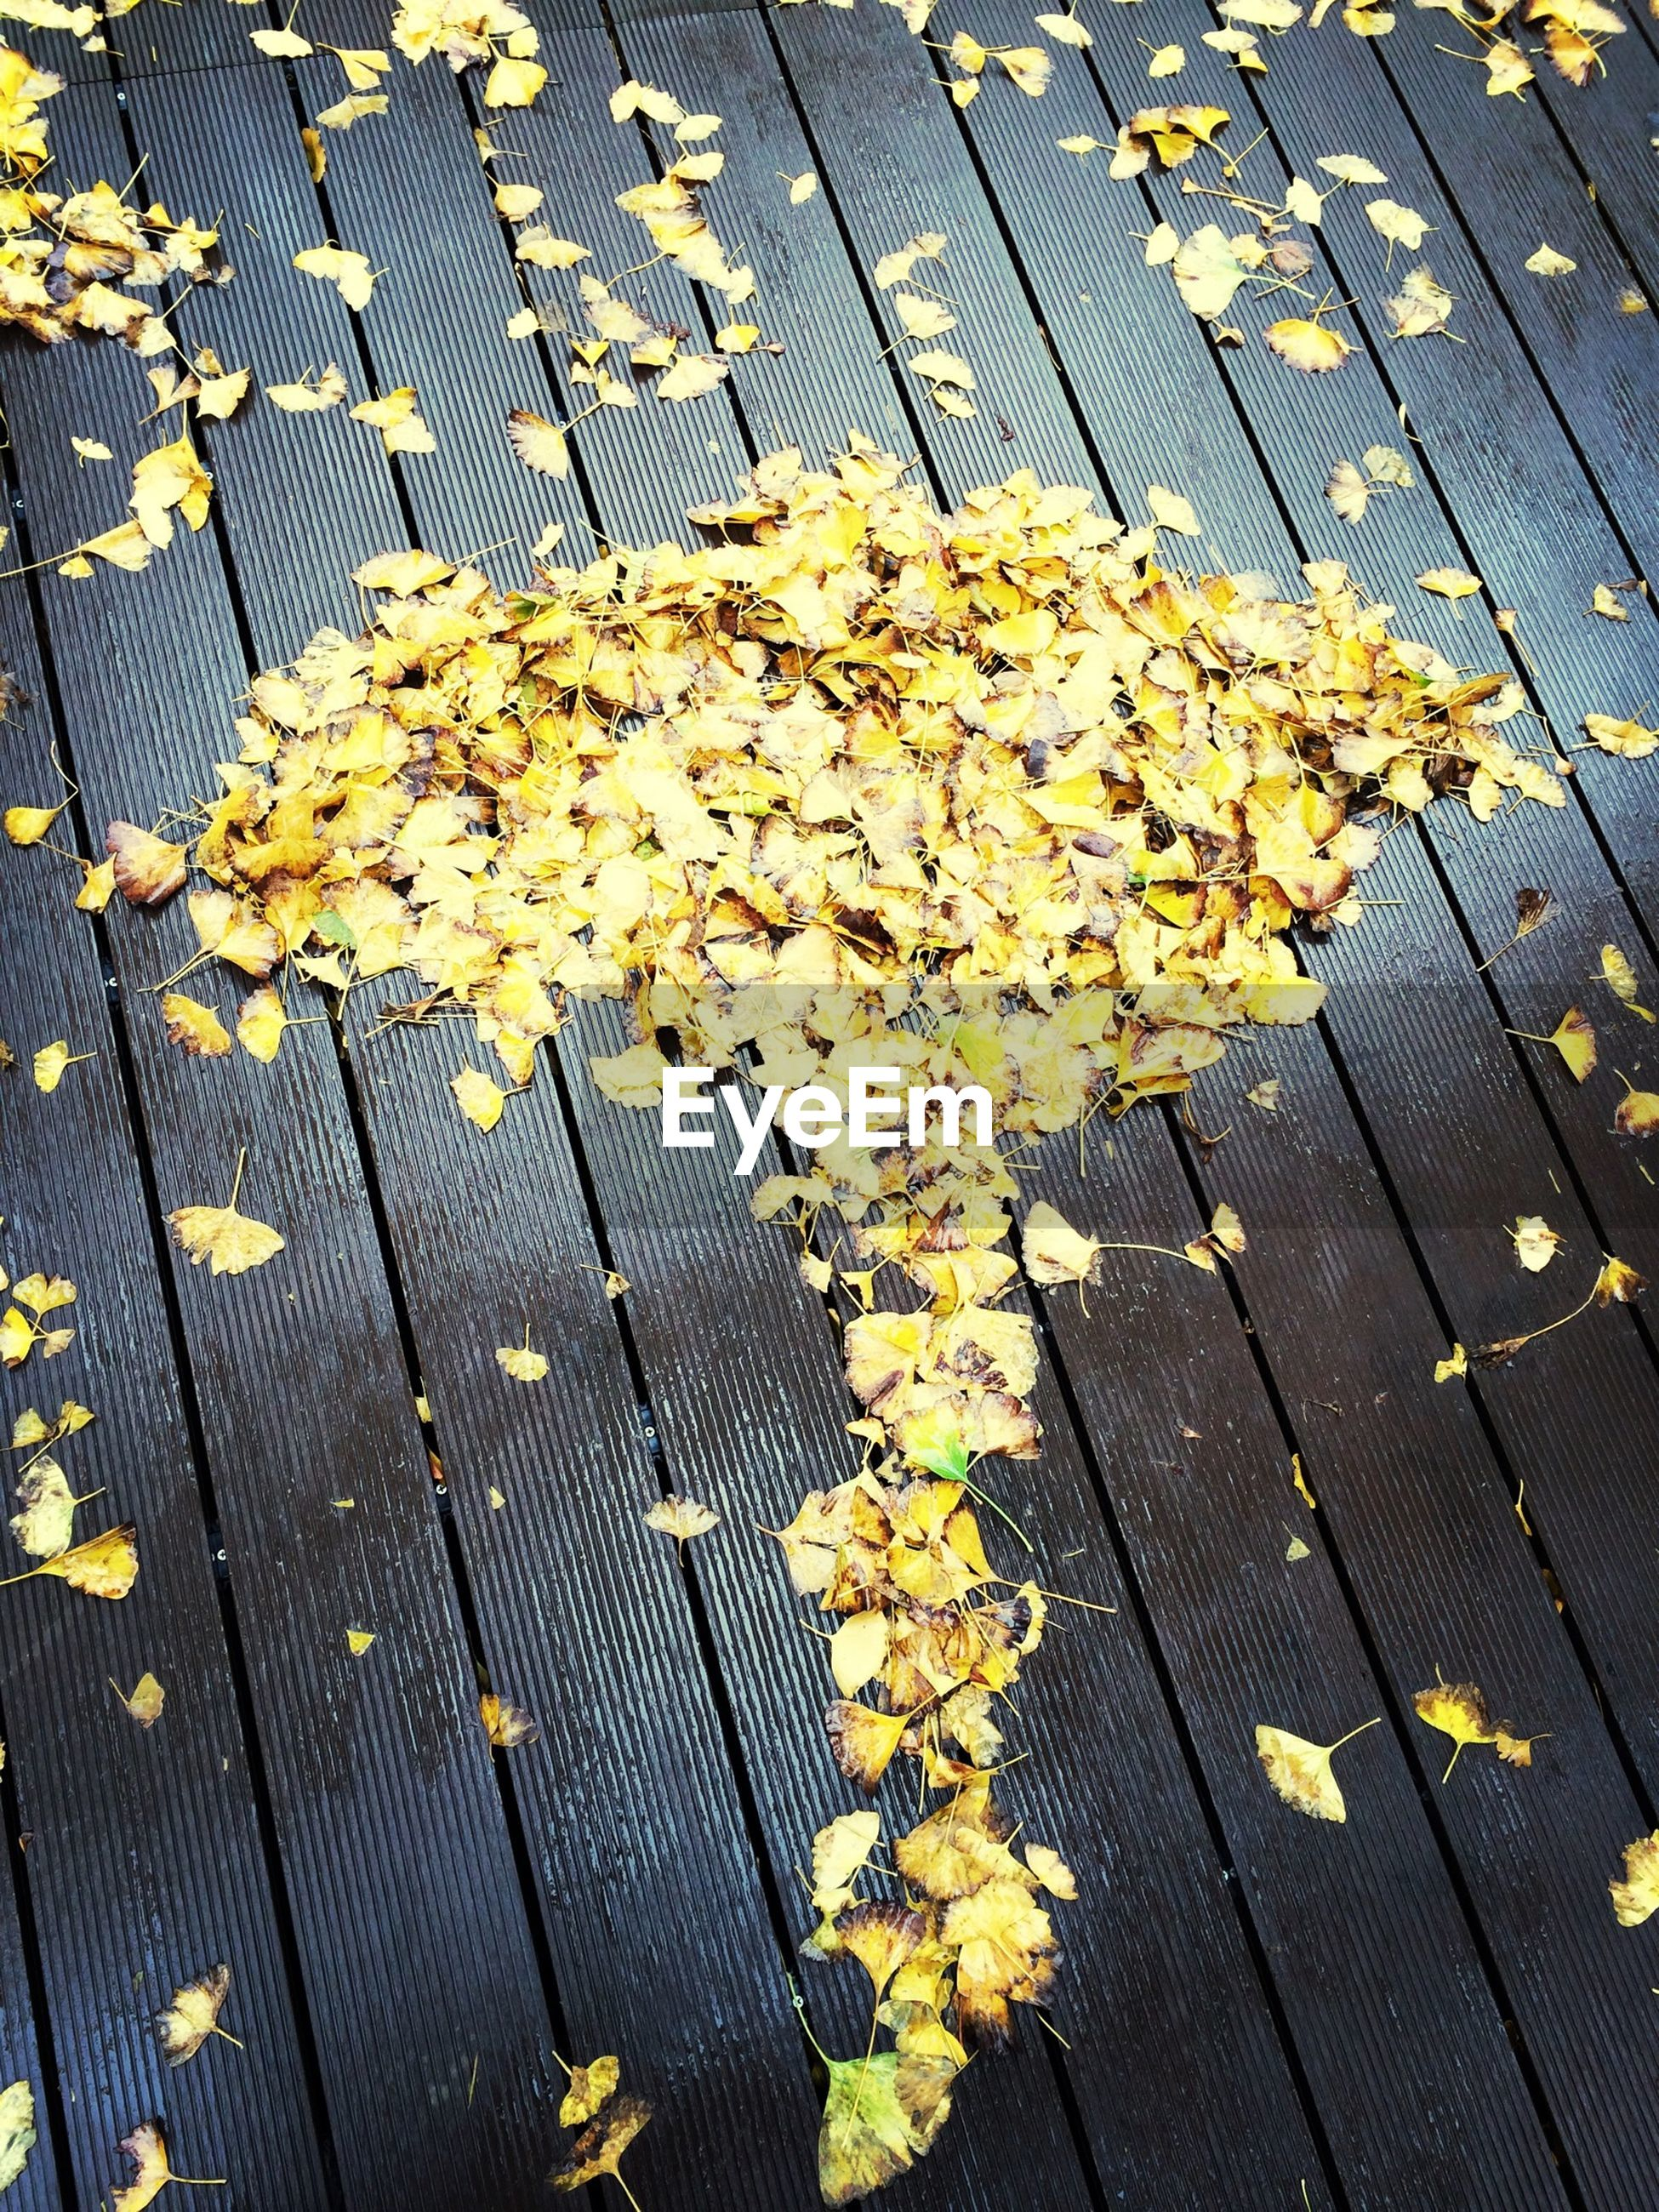 high angle view, flower, yellow, leaf, autumn, dry, fragility, season, fallen, directly above, abundance, petal, day, nature, outdoors, freshness, change, plant, sunlight, fence